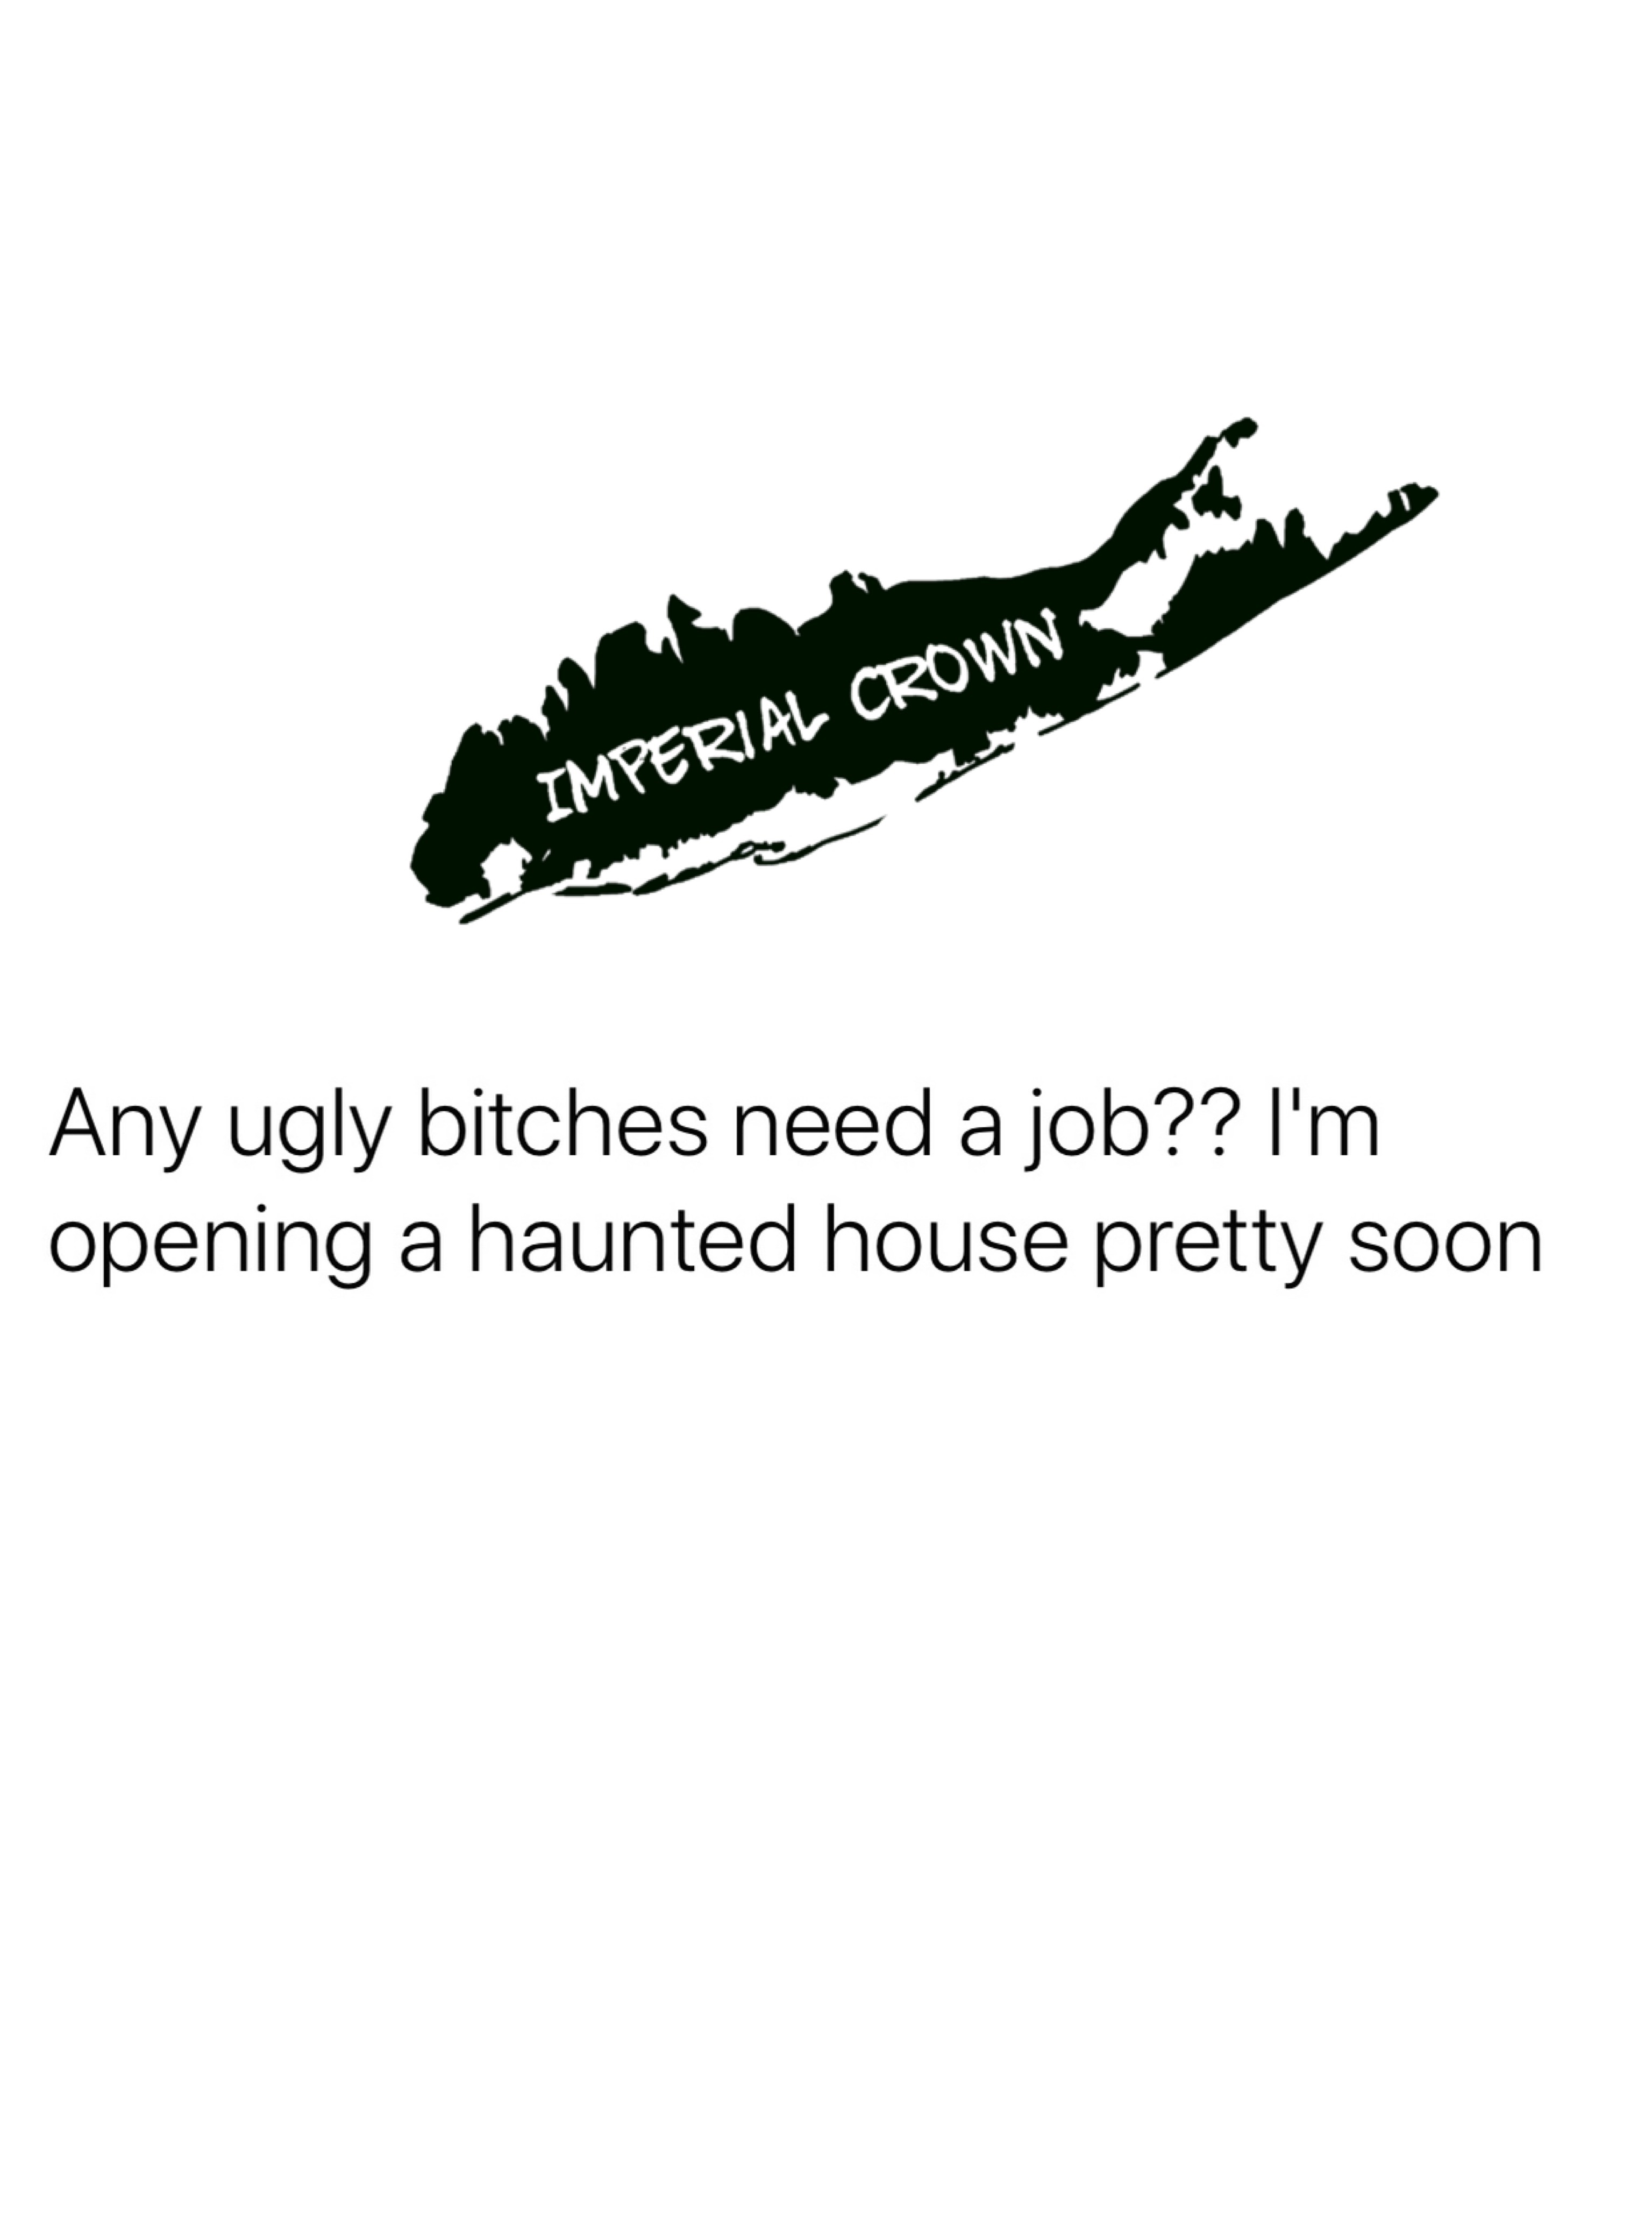 Any ugly bitches need a job